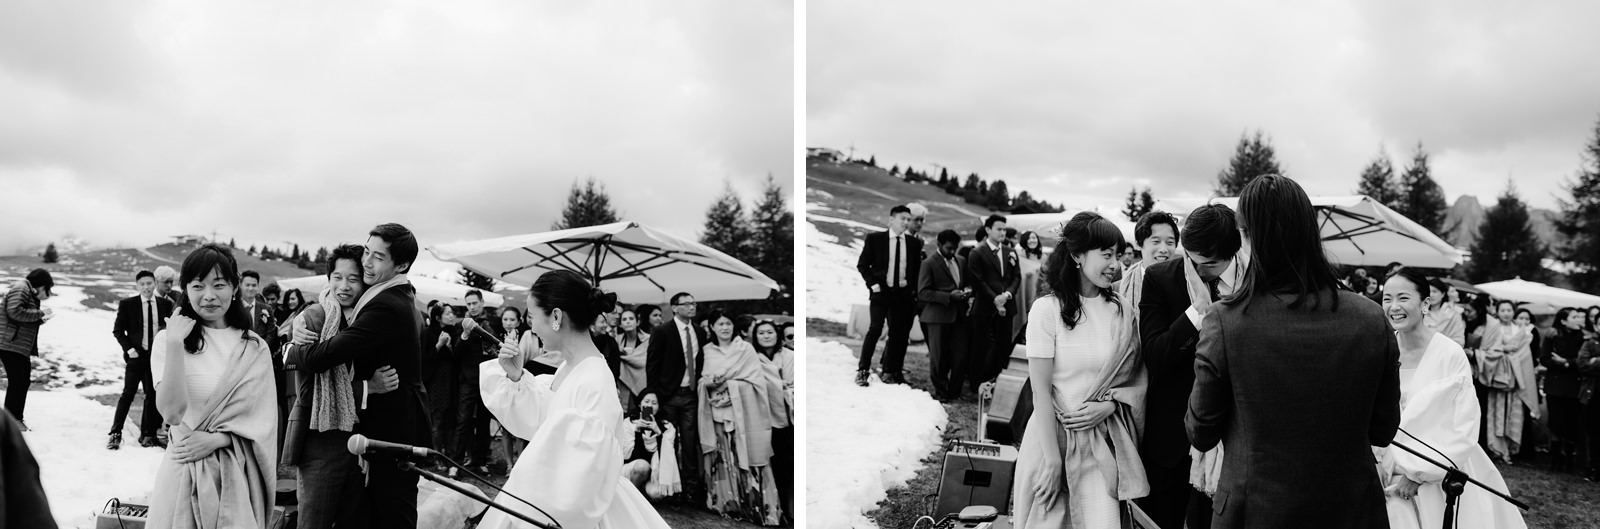 Mountain Wedding Reception